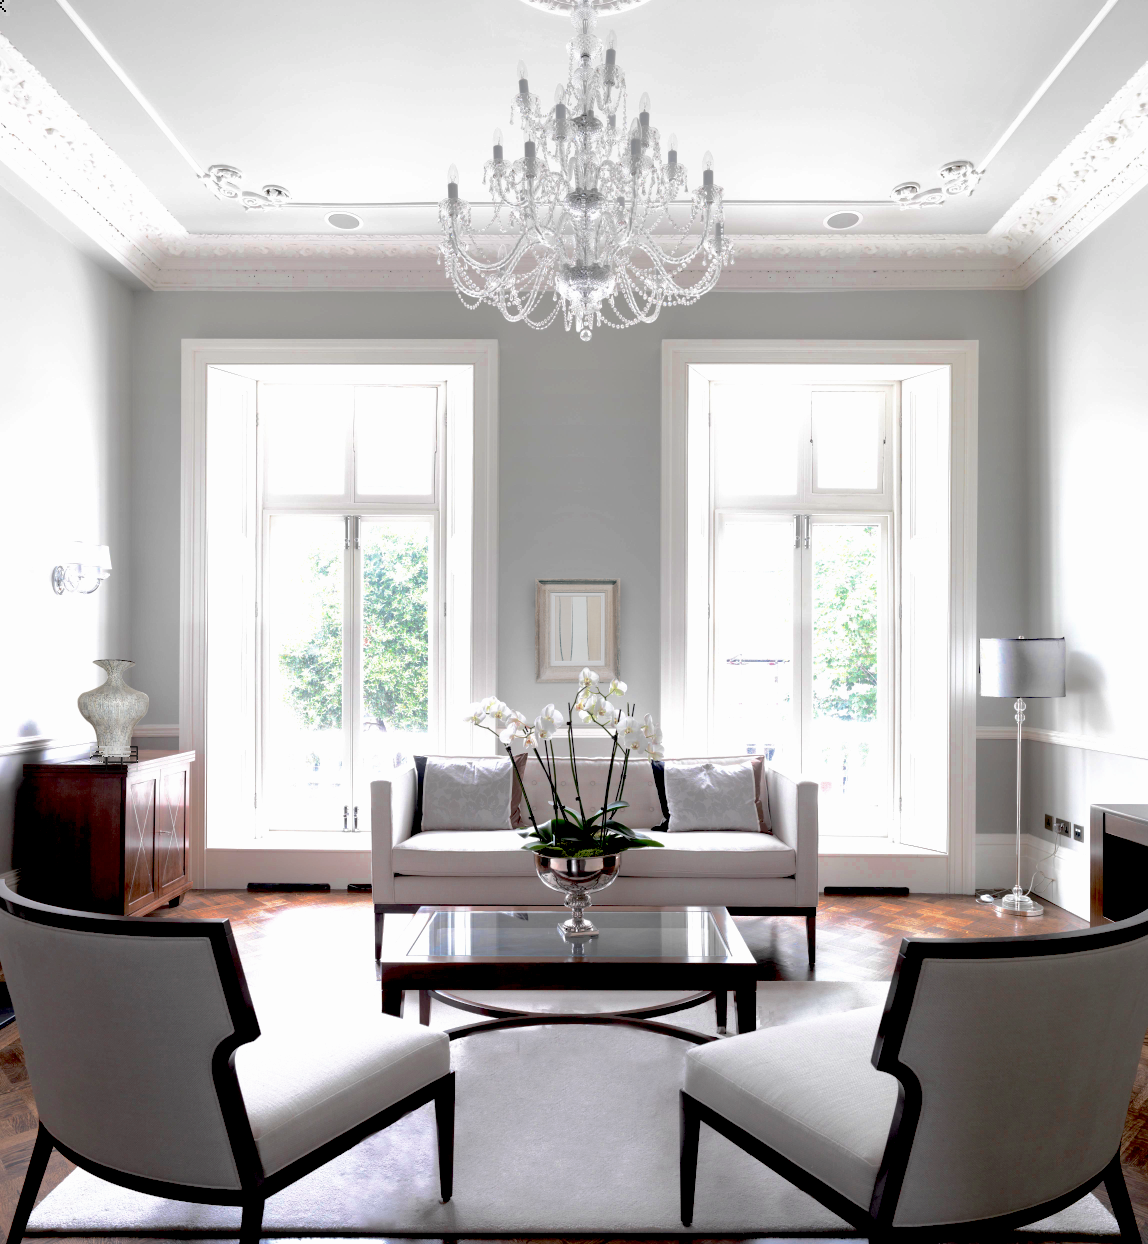 Drawing room in pale greys and whites, parquet flooring